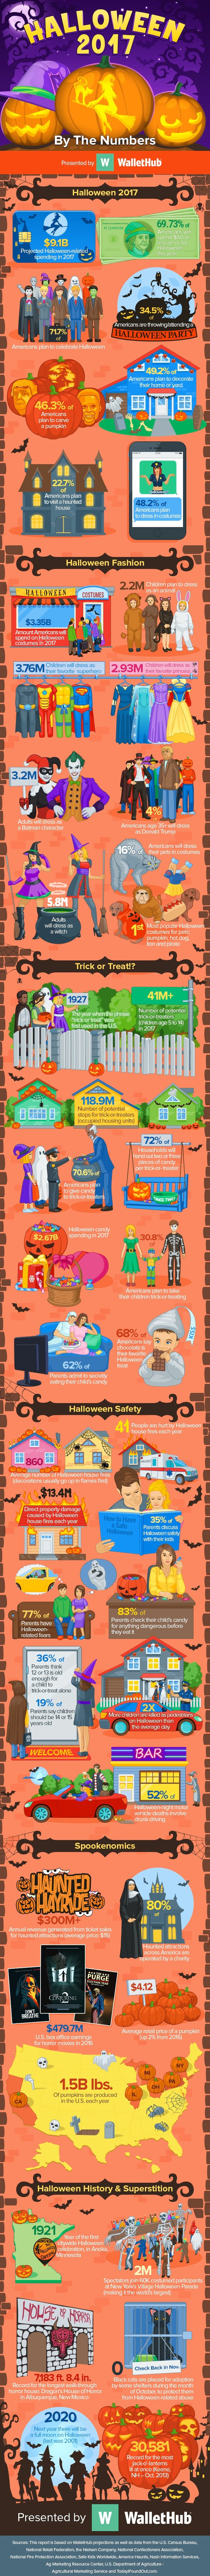 2017 Halloween Facts: Tricks & Treats By the Numbers | WalletHub®